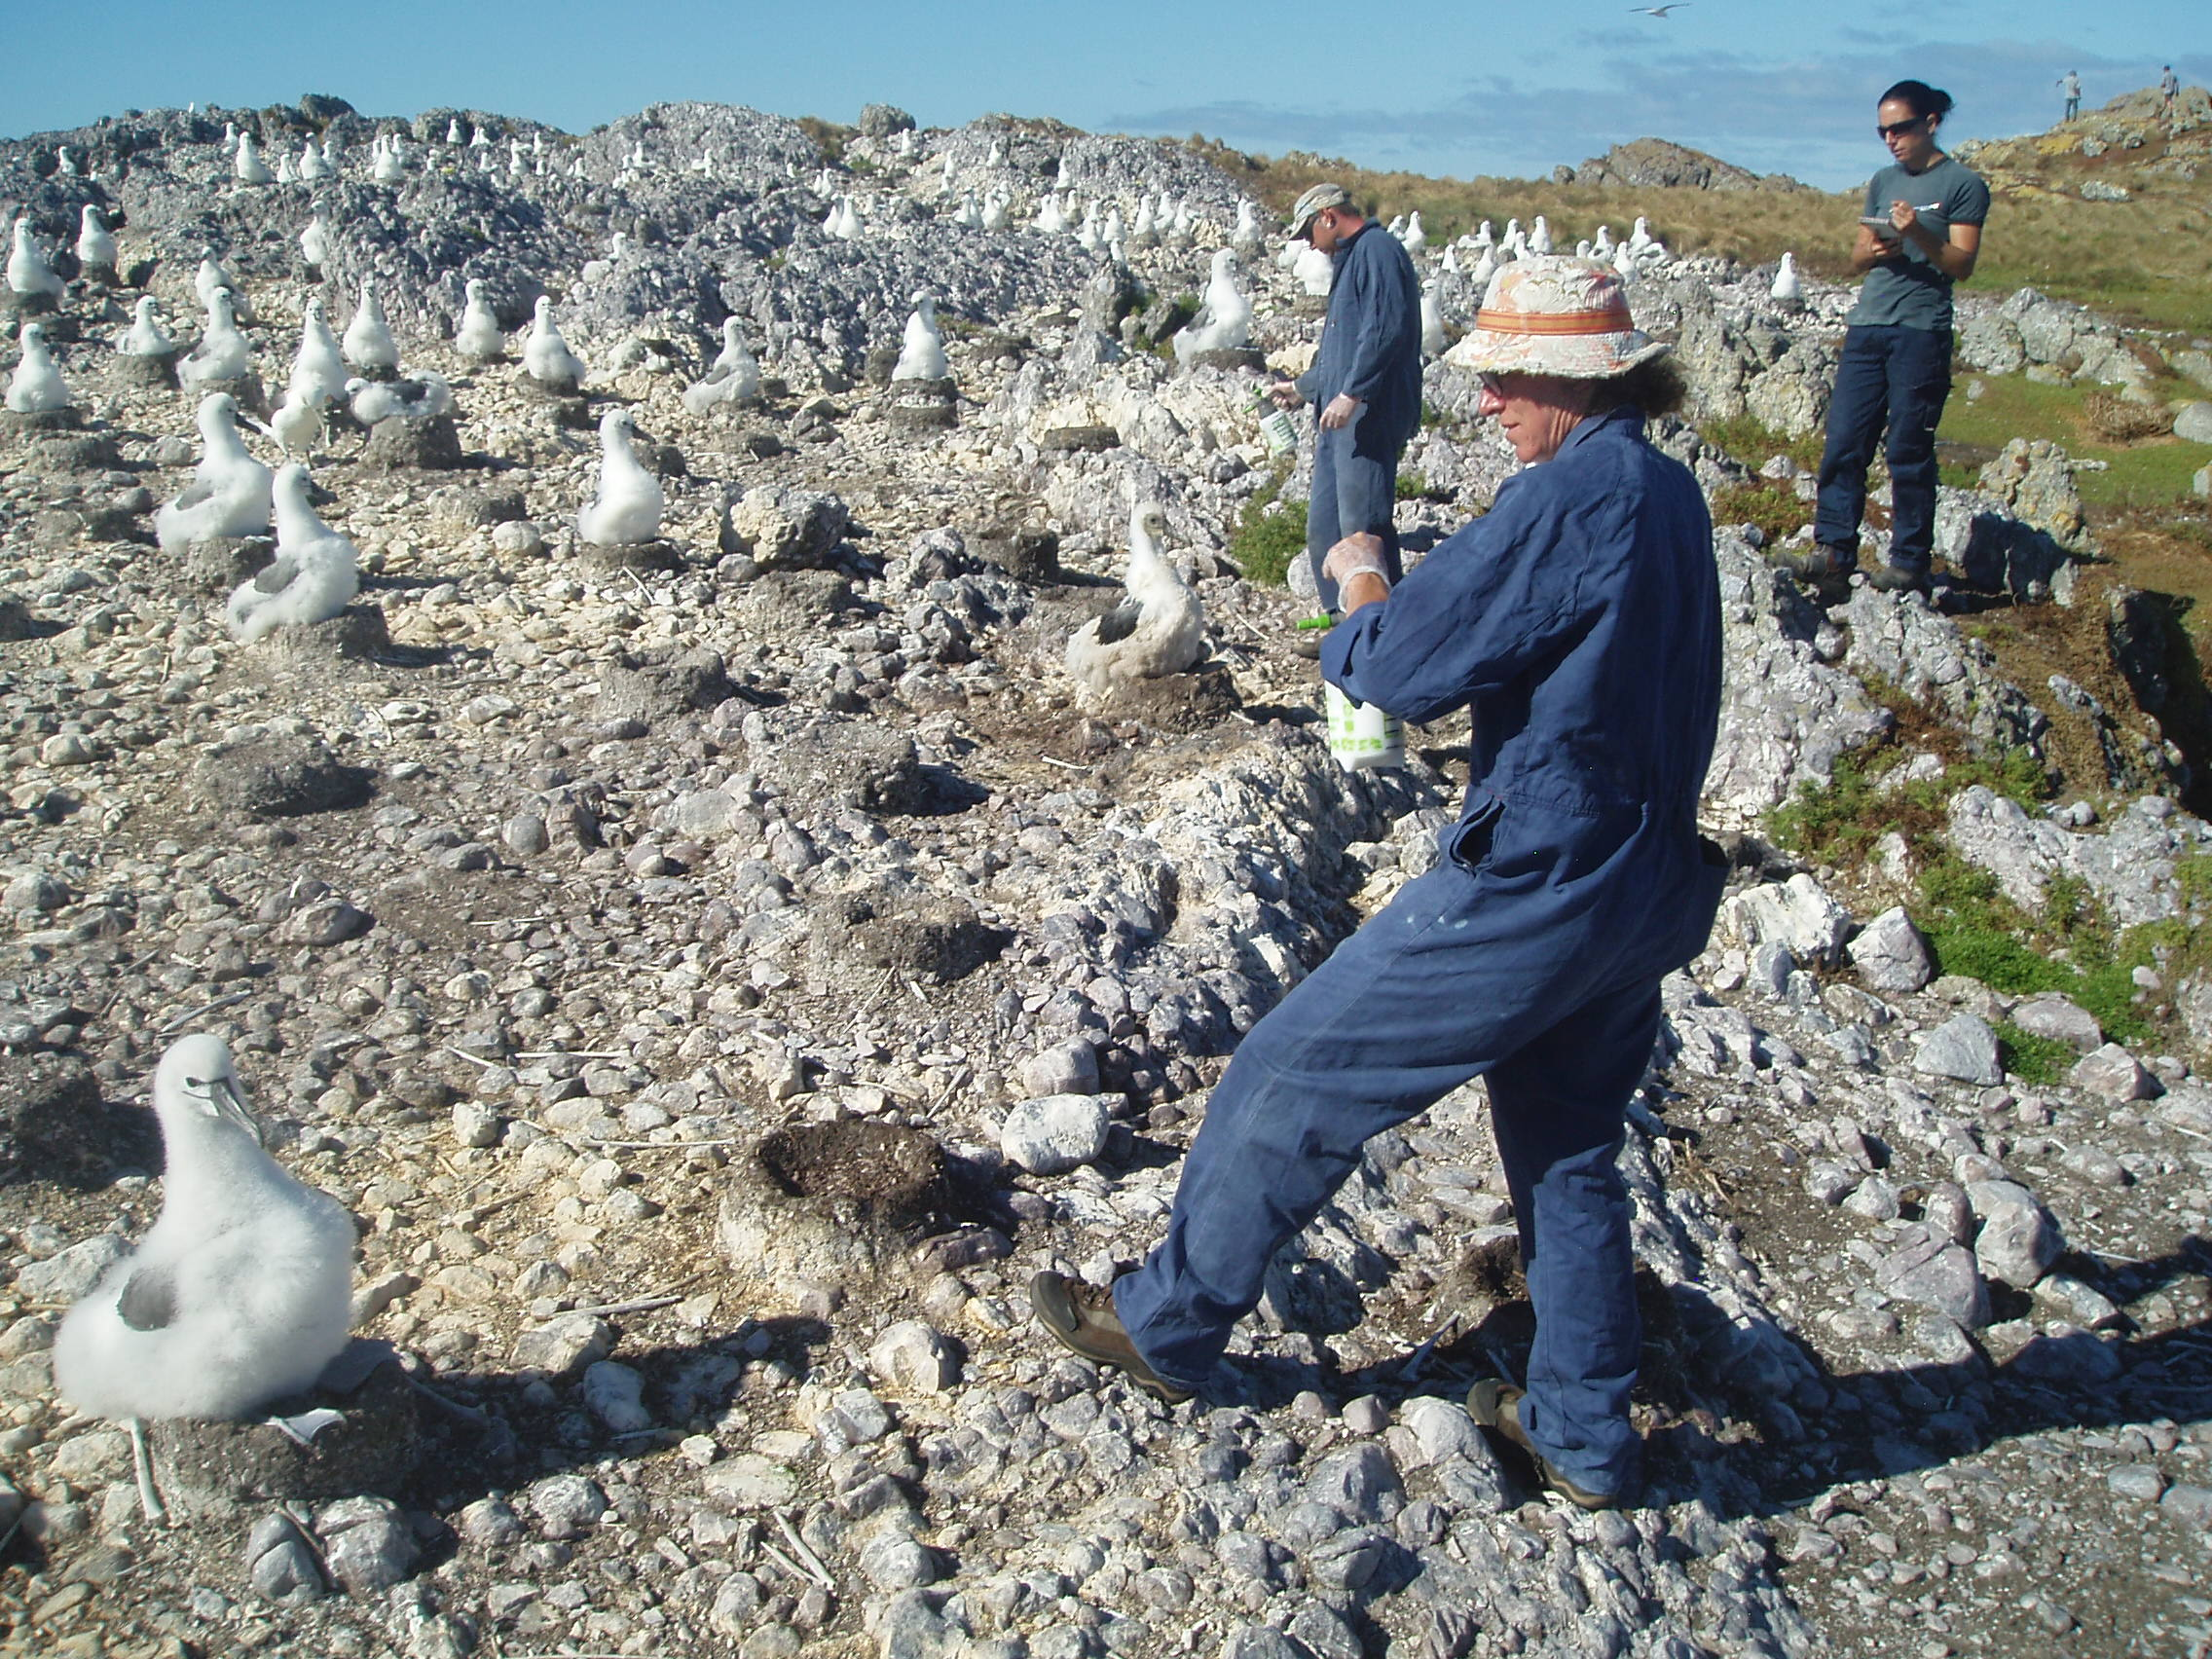 Three researchers on a rocky outcrop taking notes among albatrosses